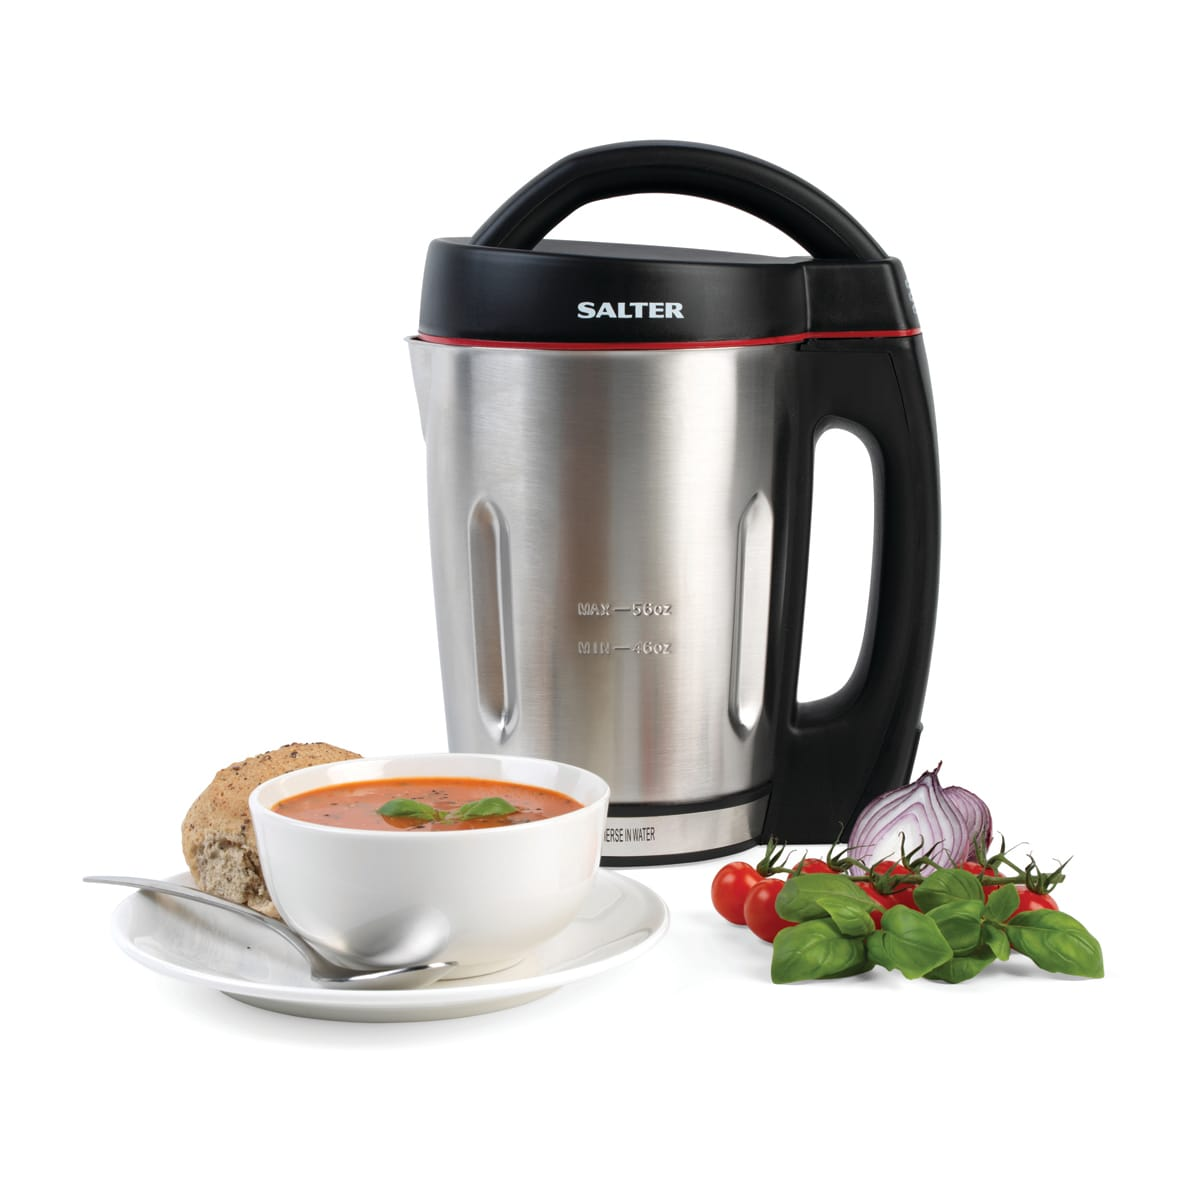 Salter Soup Maker, three automatic settings; puree, chunky and blend, capacity of 1600 ml, intelligent control system will prevent overspill, soup in 30 minutes